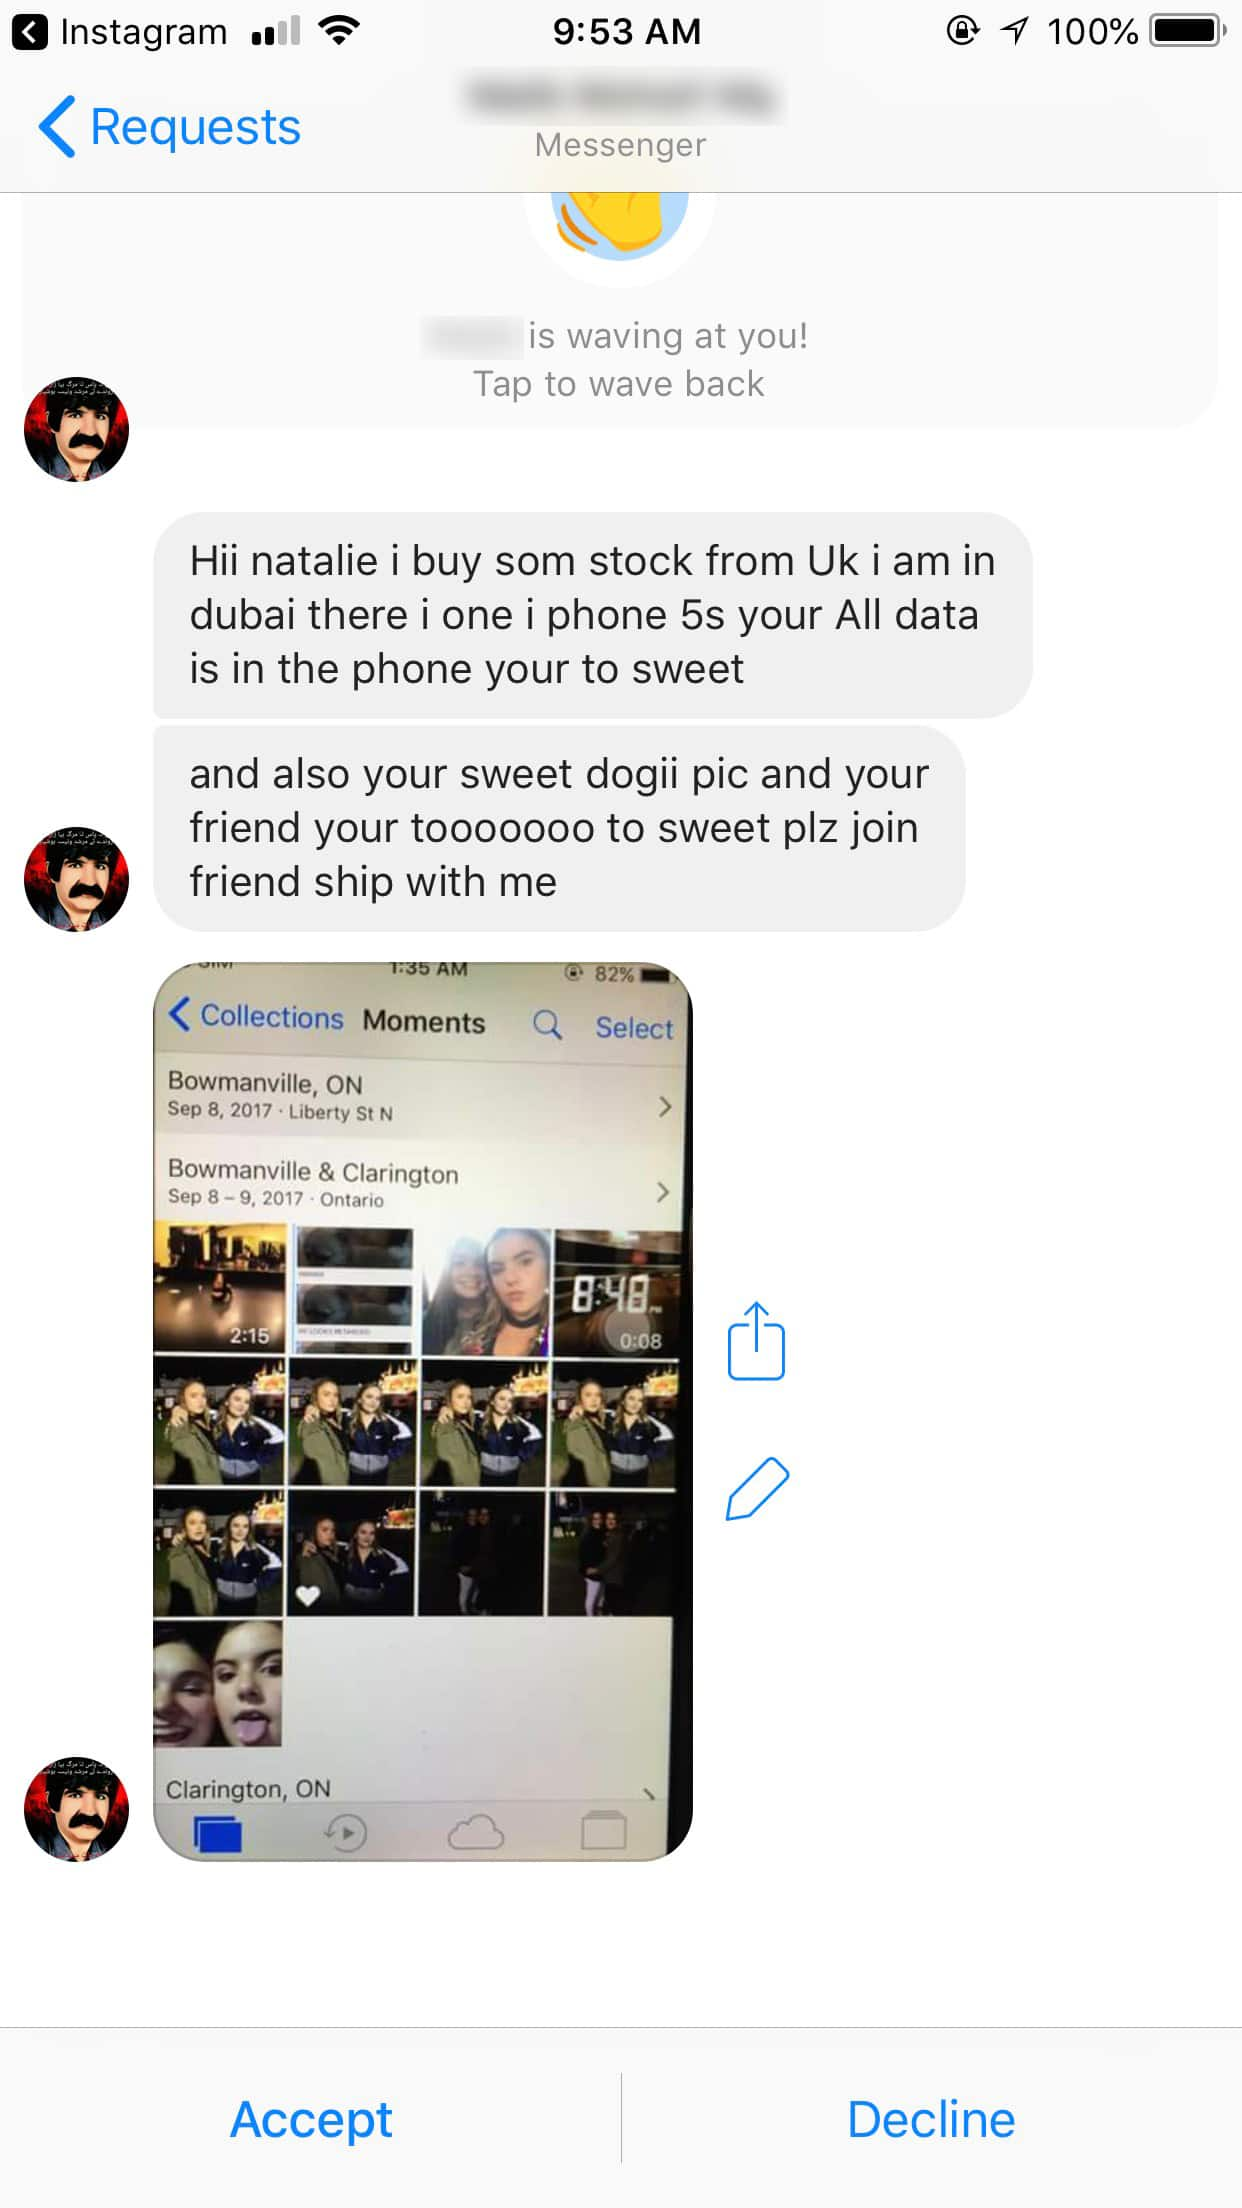 A screenshot of Halls' Facebook Messenger with messages from a stranger